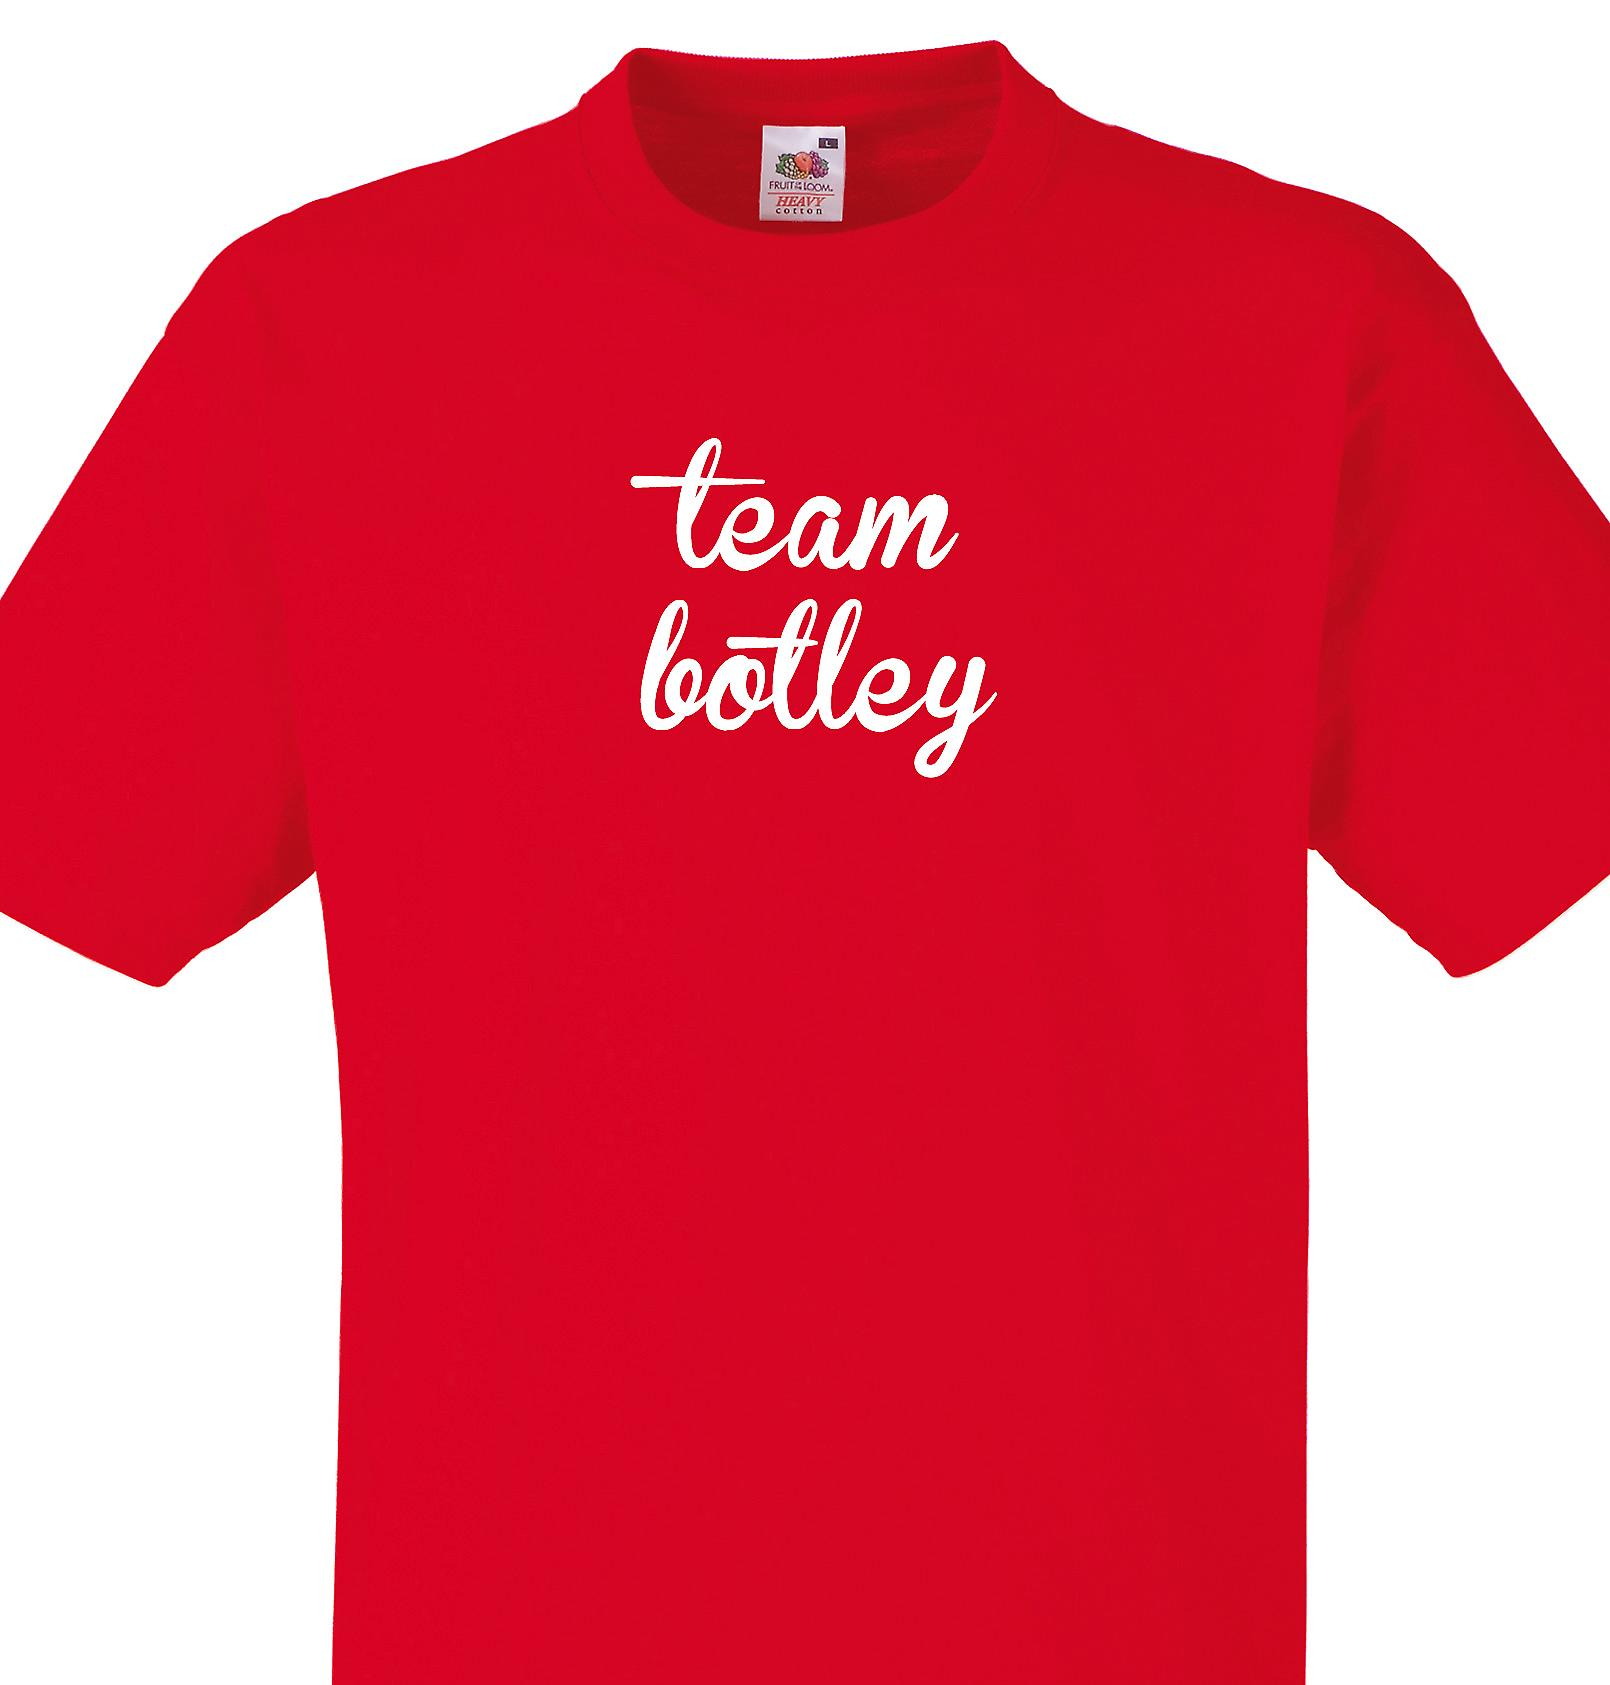 Team Botley Red T shirt